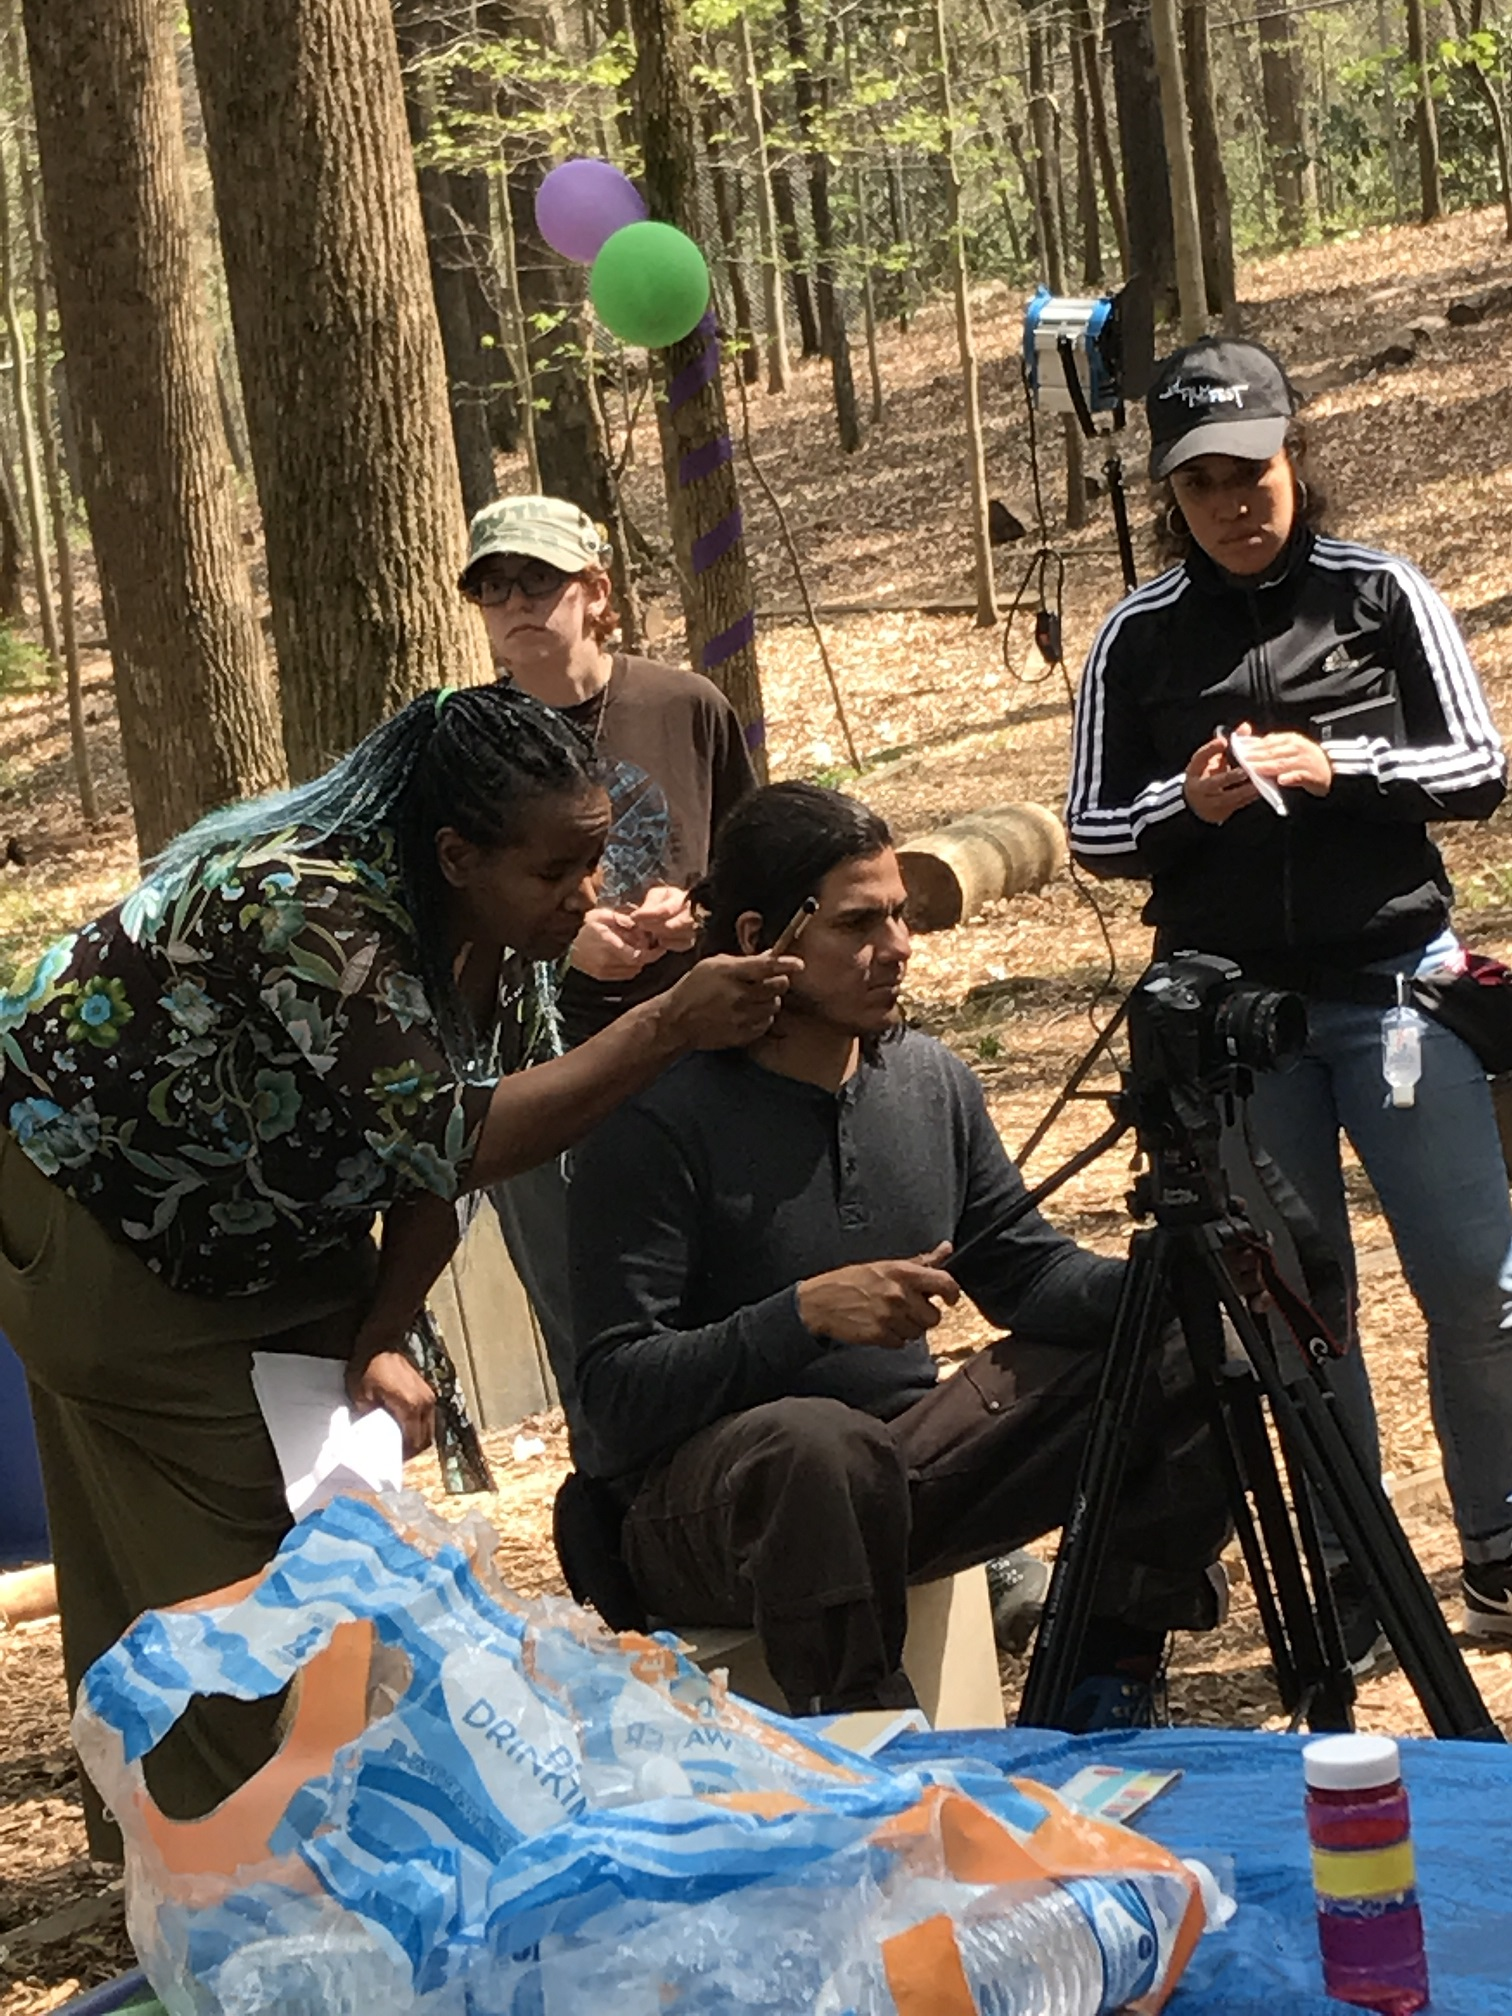 Behind the scenes of A Swing And A Switch - Director Shanalyna Cp, DP Roberto Hernandez, Grip Anna R Brown and AC Priscilia Torres - Setting the shot